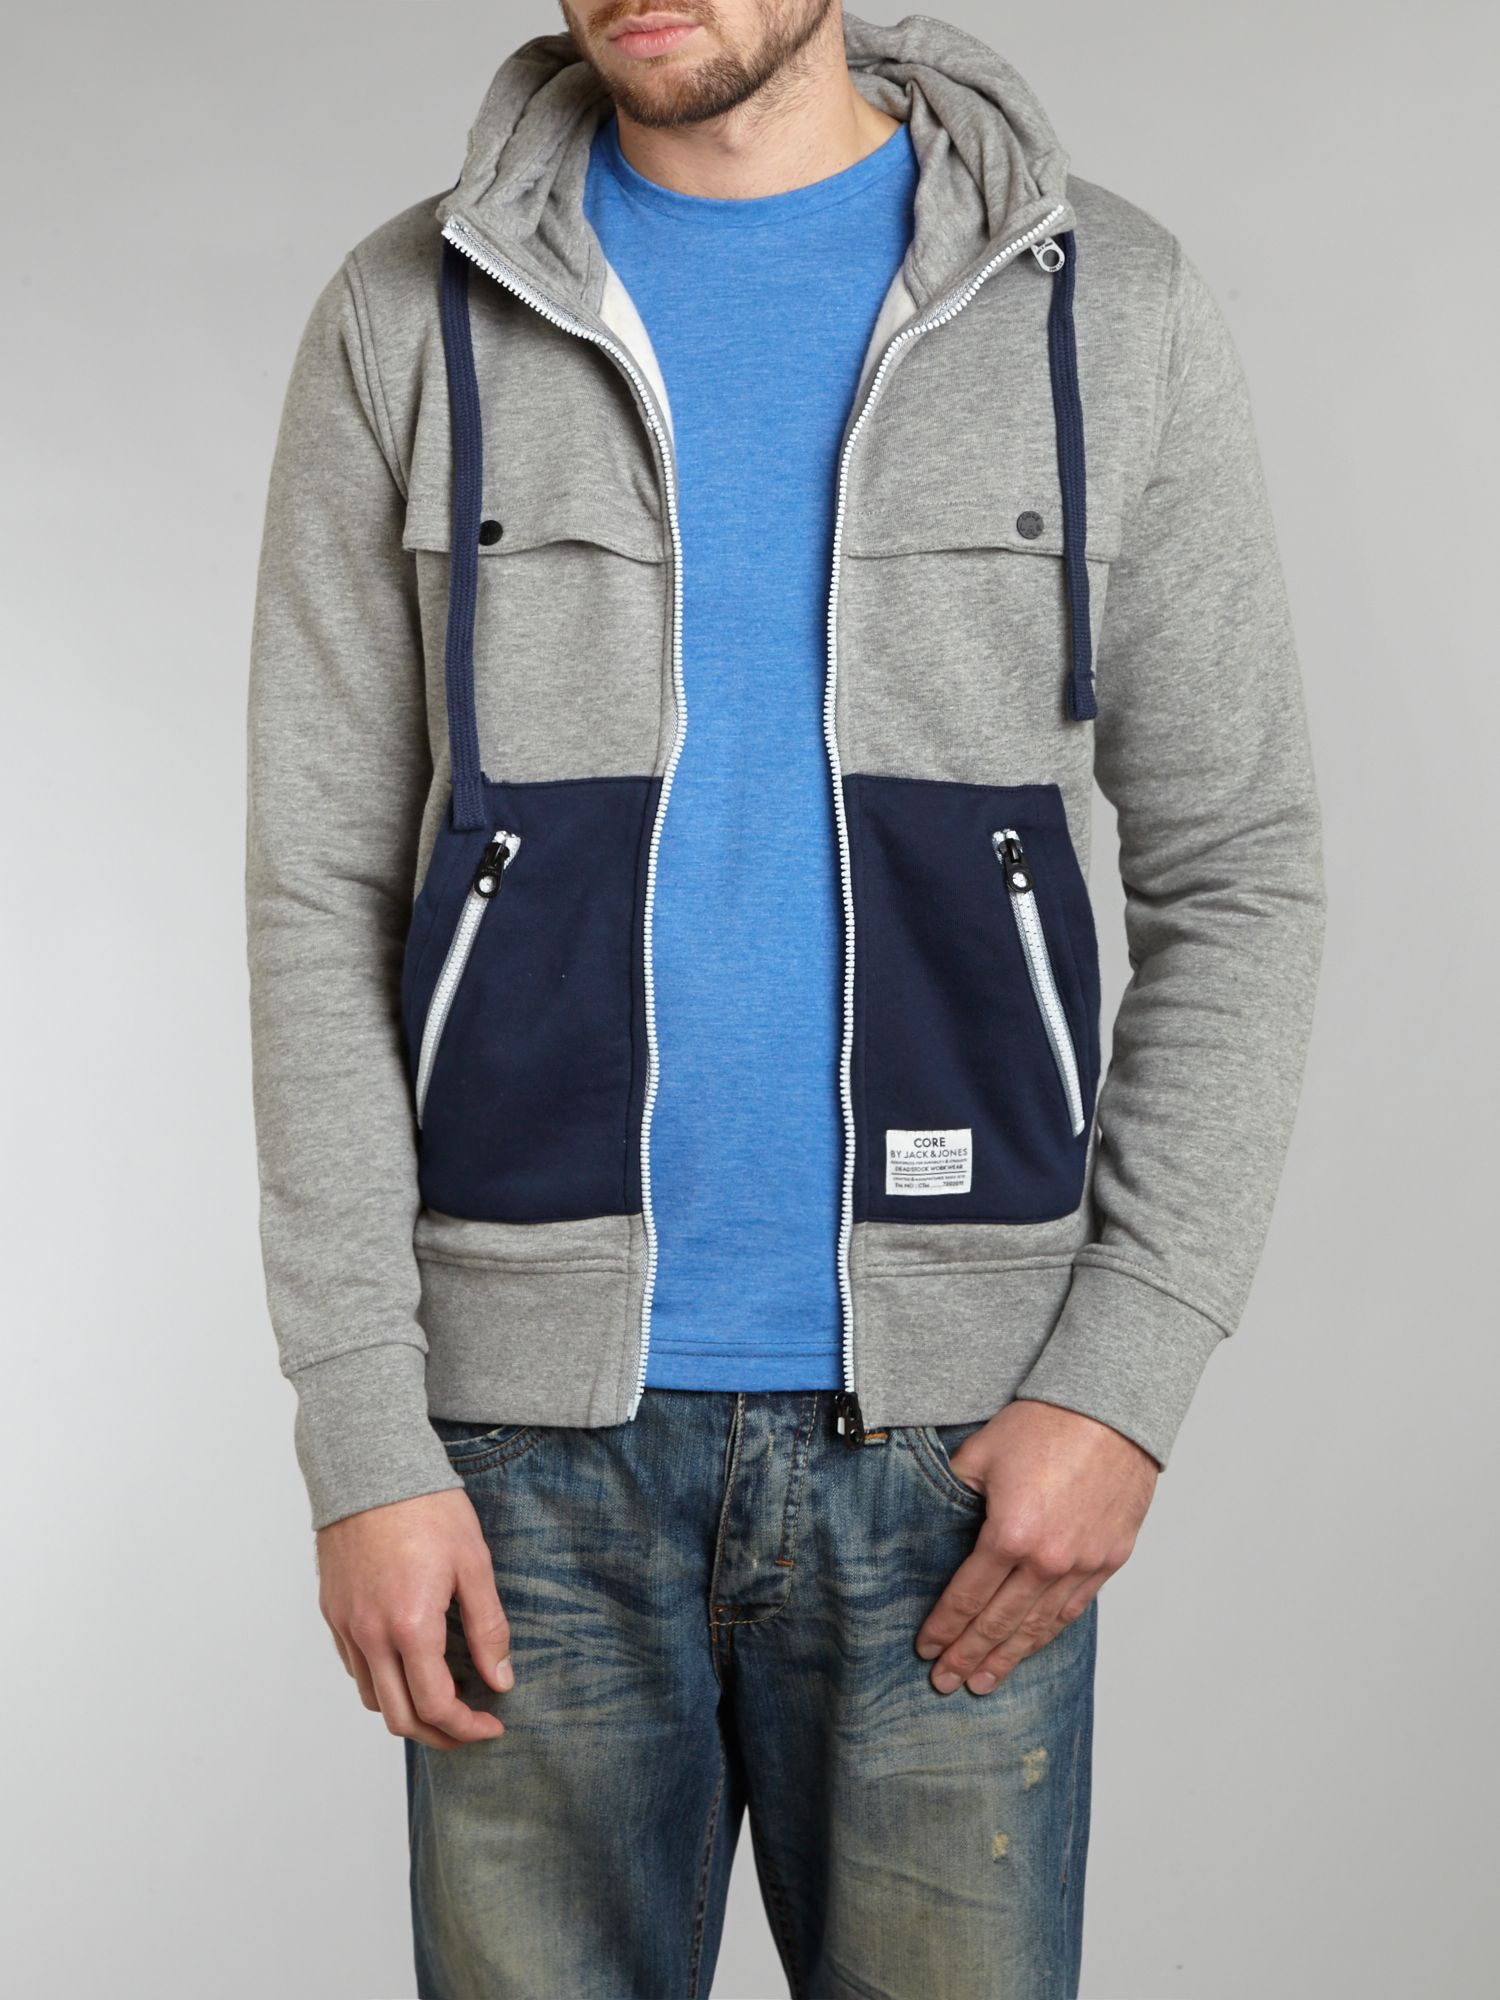 Simon hooded Sweatshirt